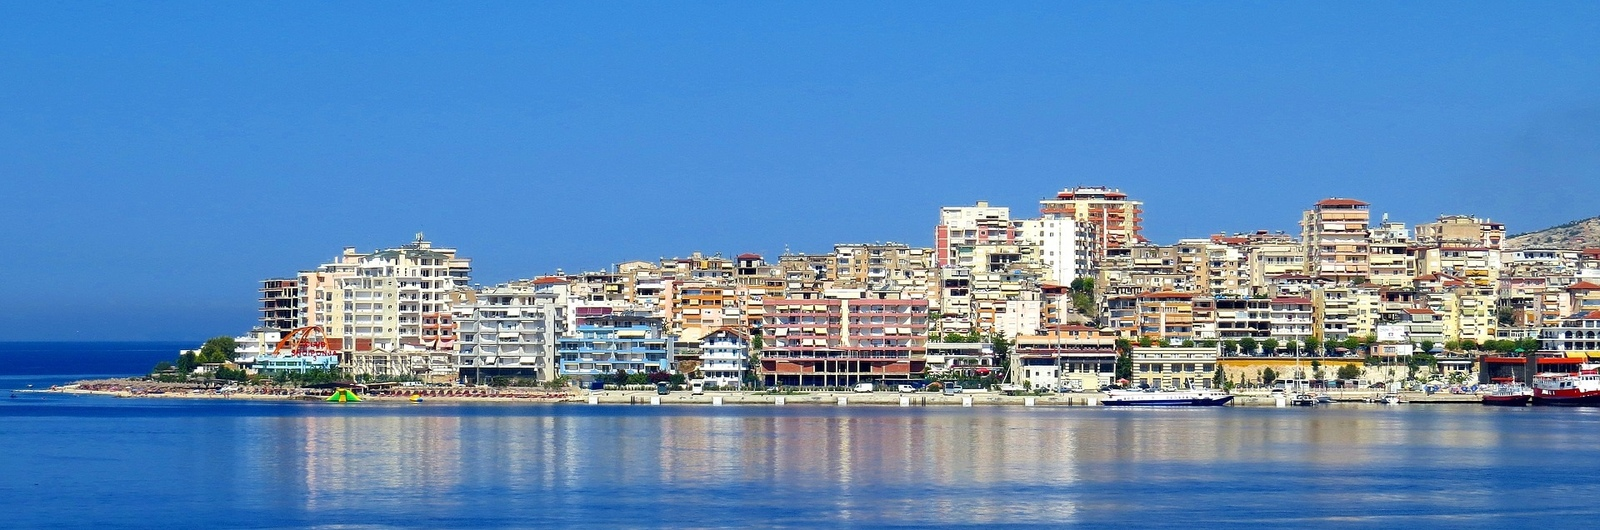 saranda city header